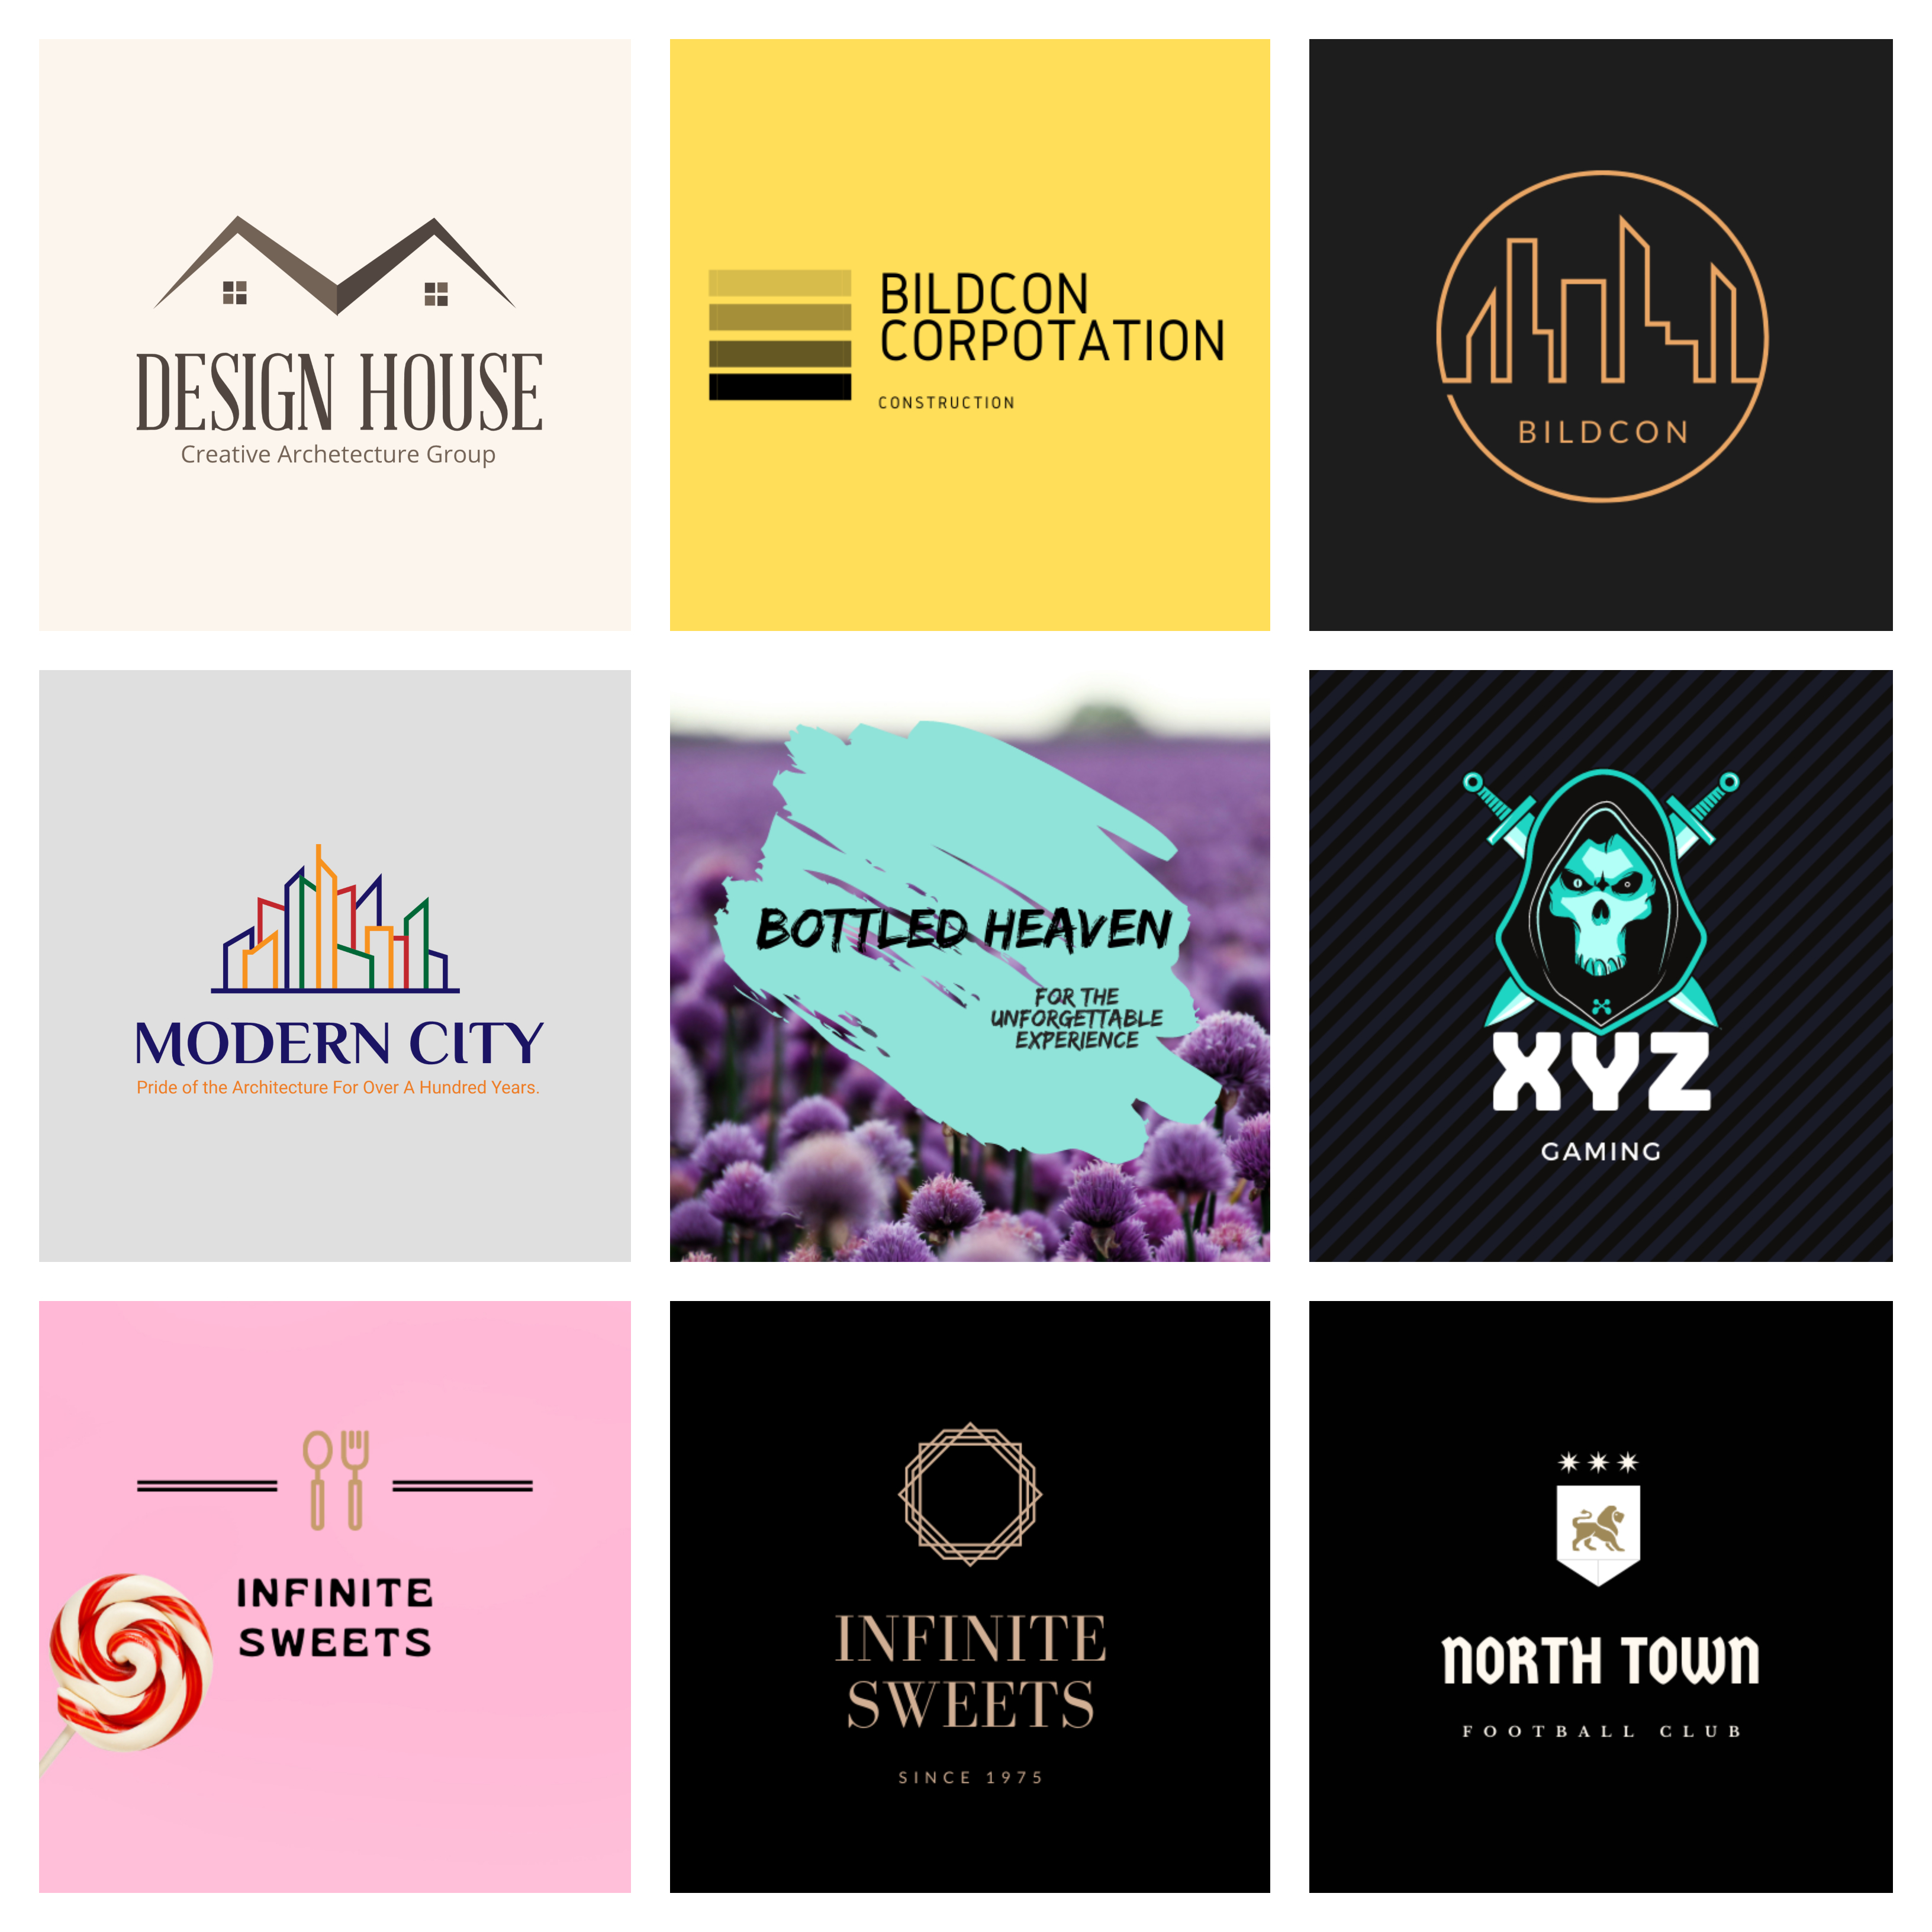 i will design minimalist high resolution logos for you